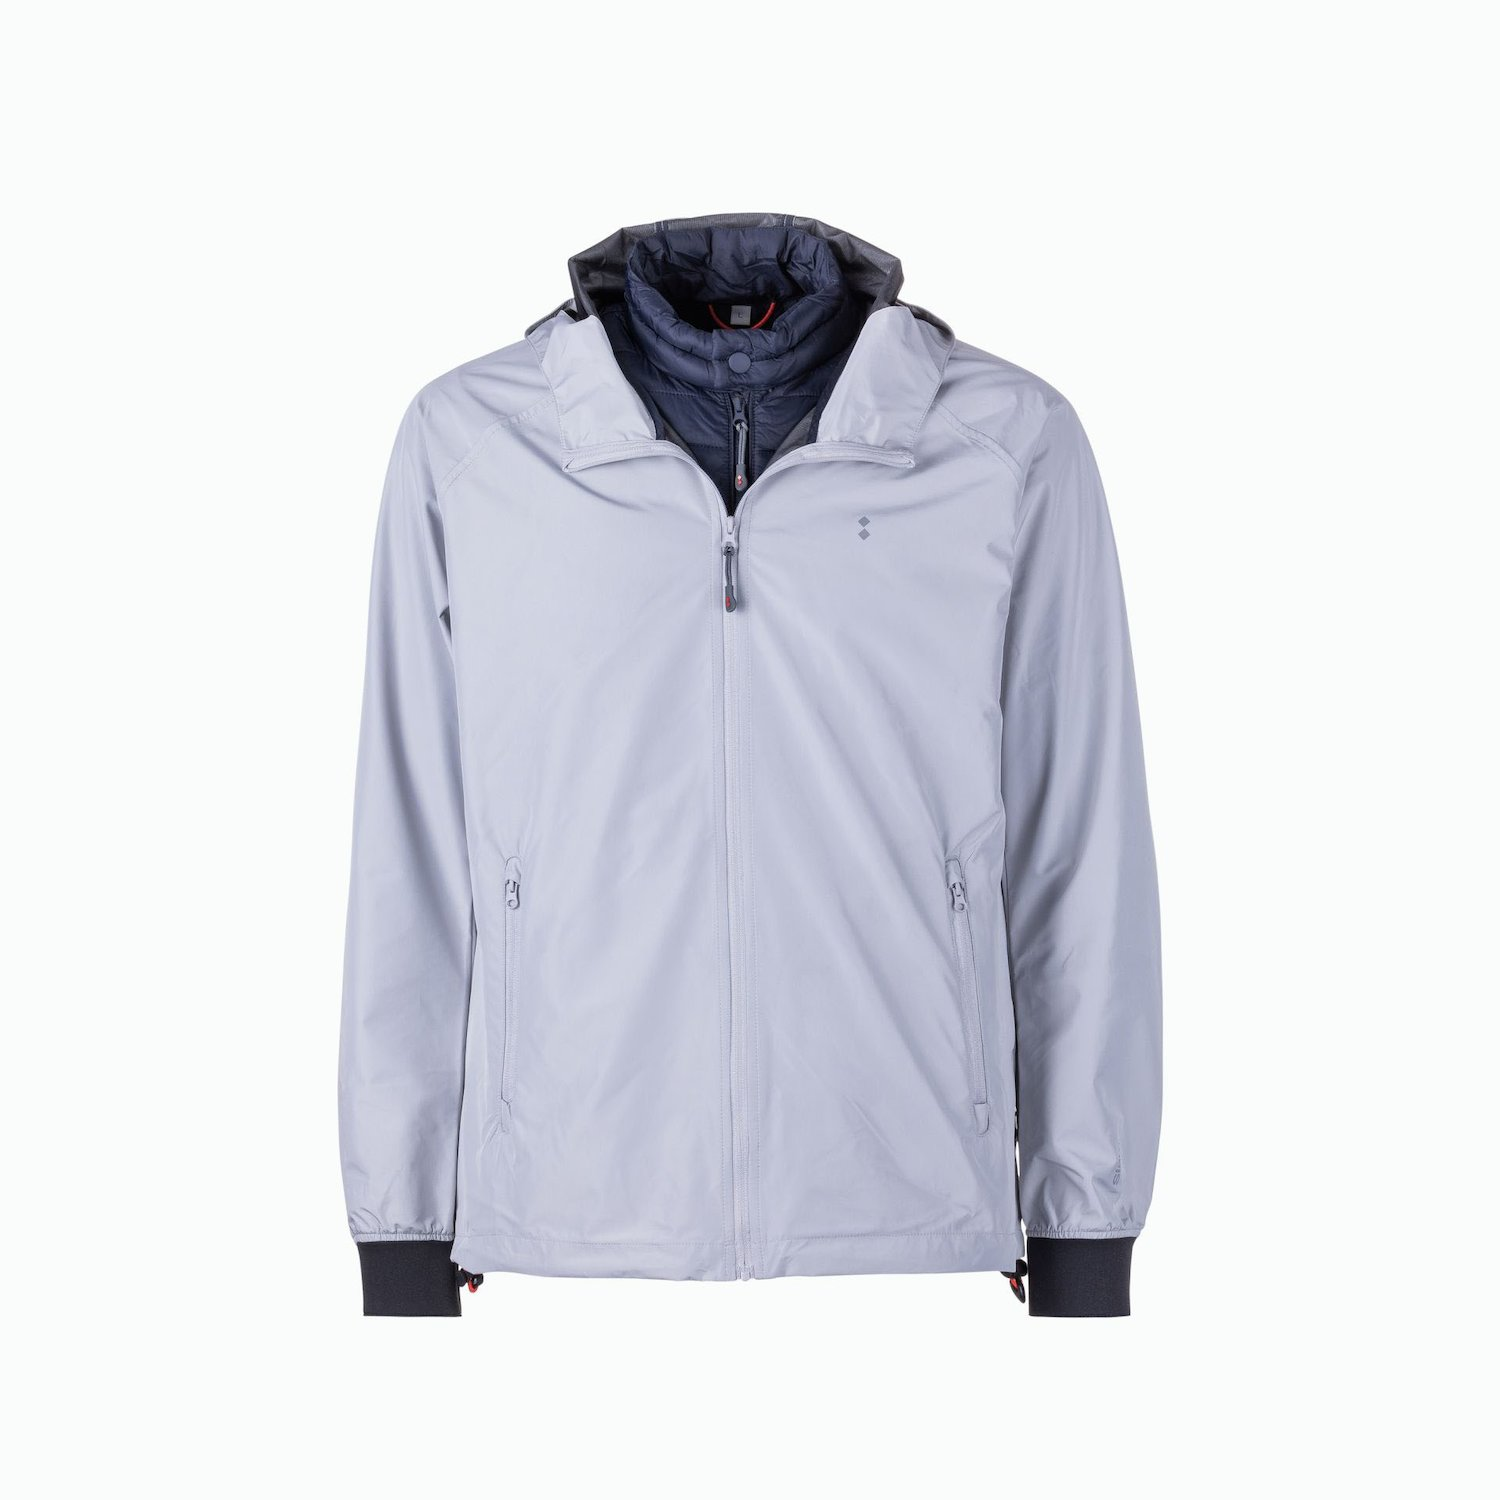 Anchor Bay Jacket - Gris Niebla